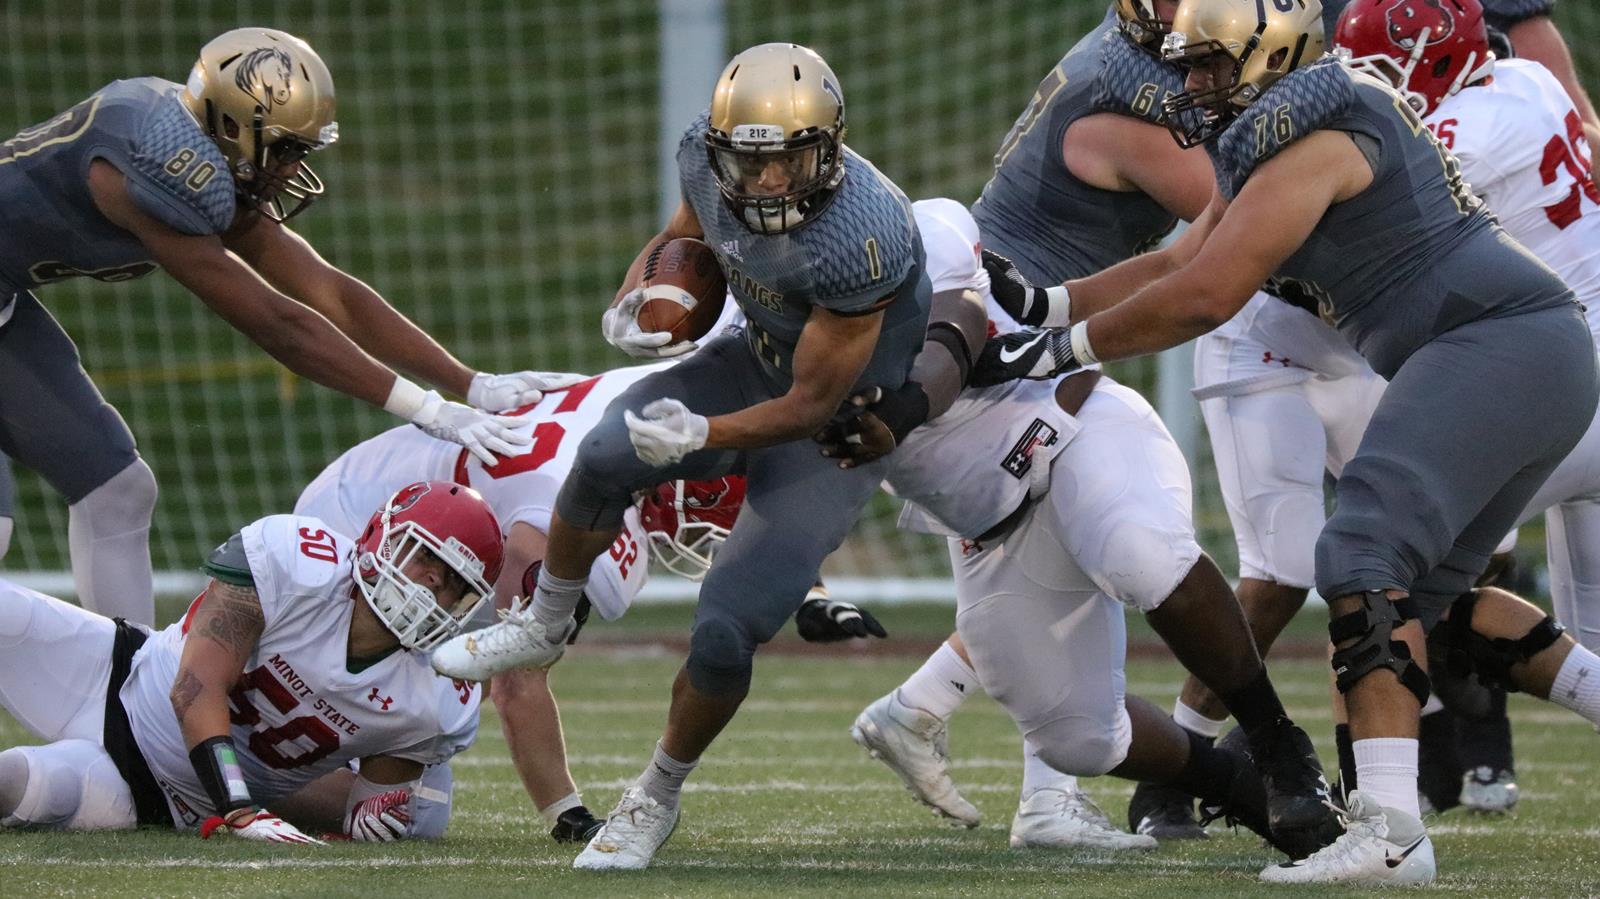 Smsu Faces No 18 Winona State In Annual Battle For The Sledge